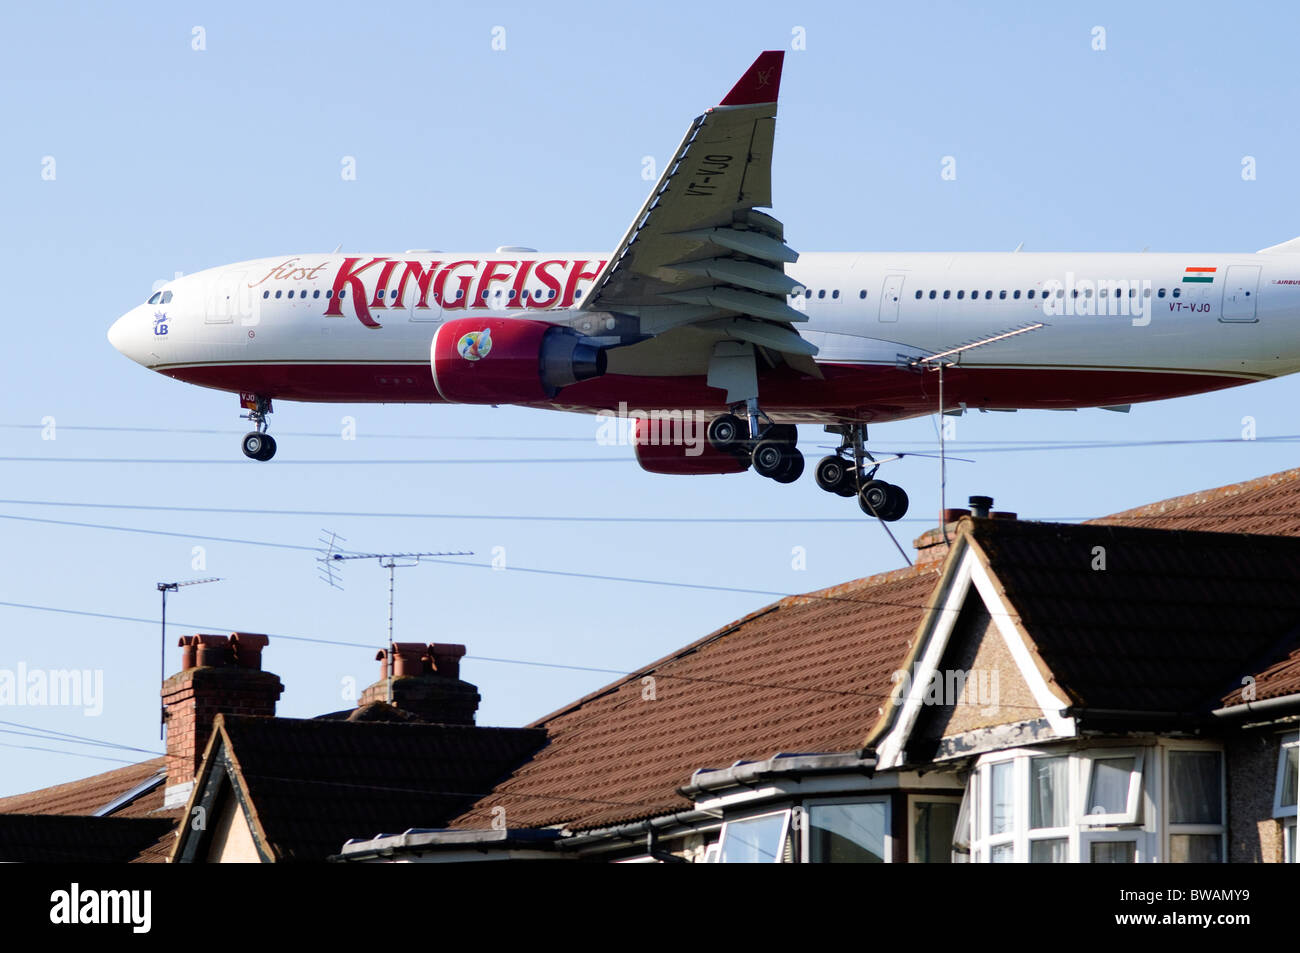 Heathrow Runway Approach By Airbus A330 Kingfisher Airlines Plane